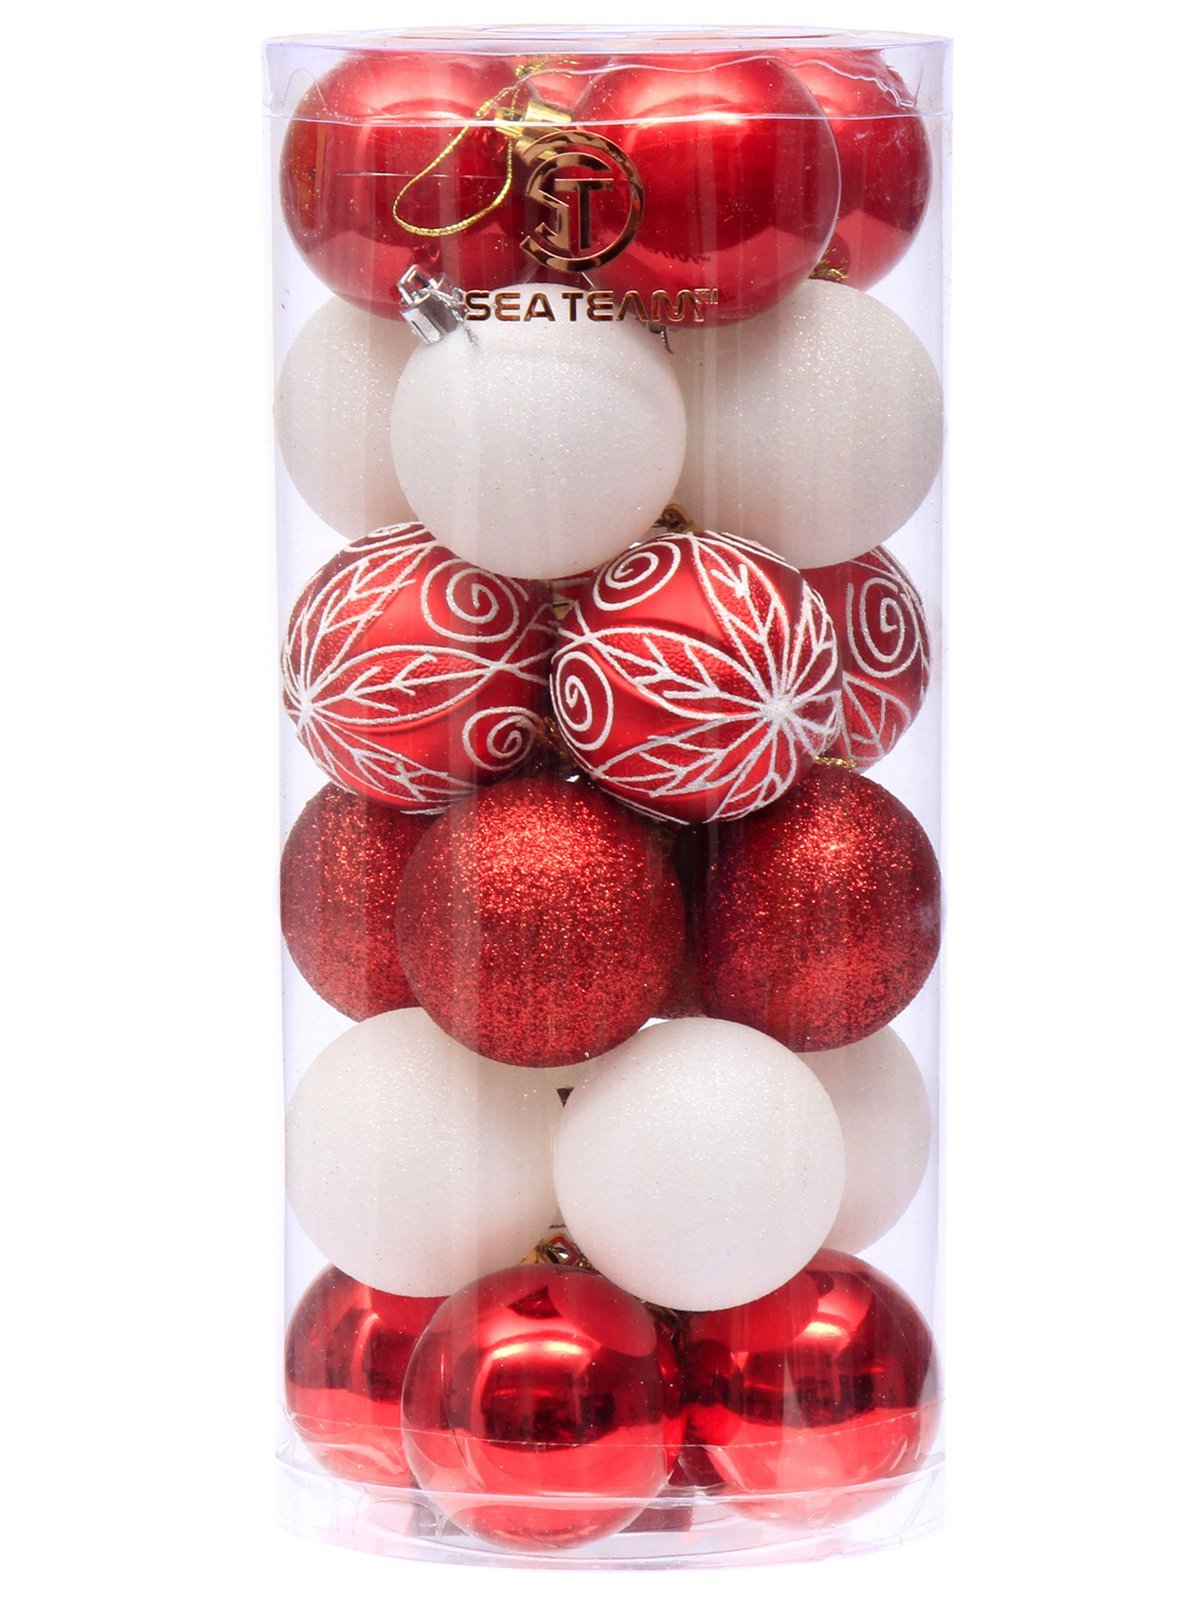 Sea Team 60mm/2.36'' Decorative Shatterproof Painting & Glittering Designs Christmas Ball Ornaments Set in Harmonious Contrast Color, 24-Pack, Red